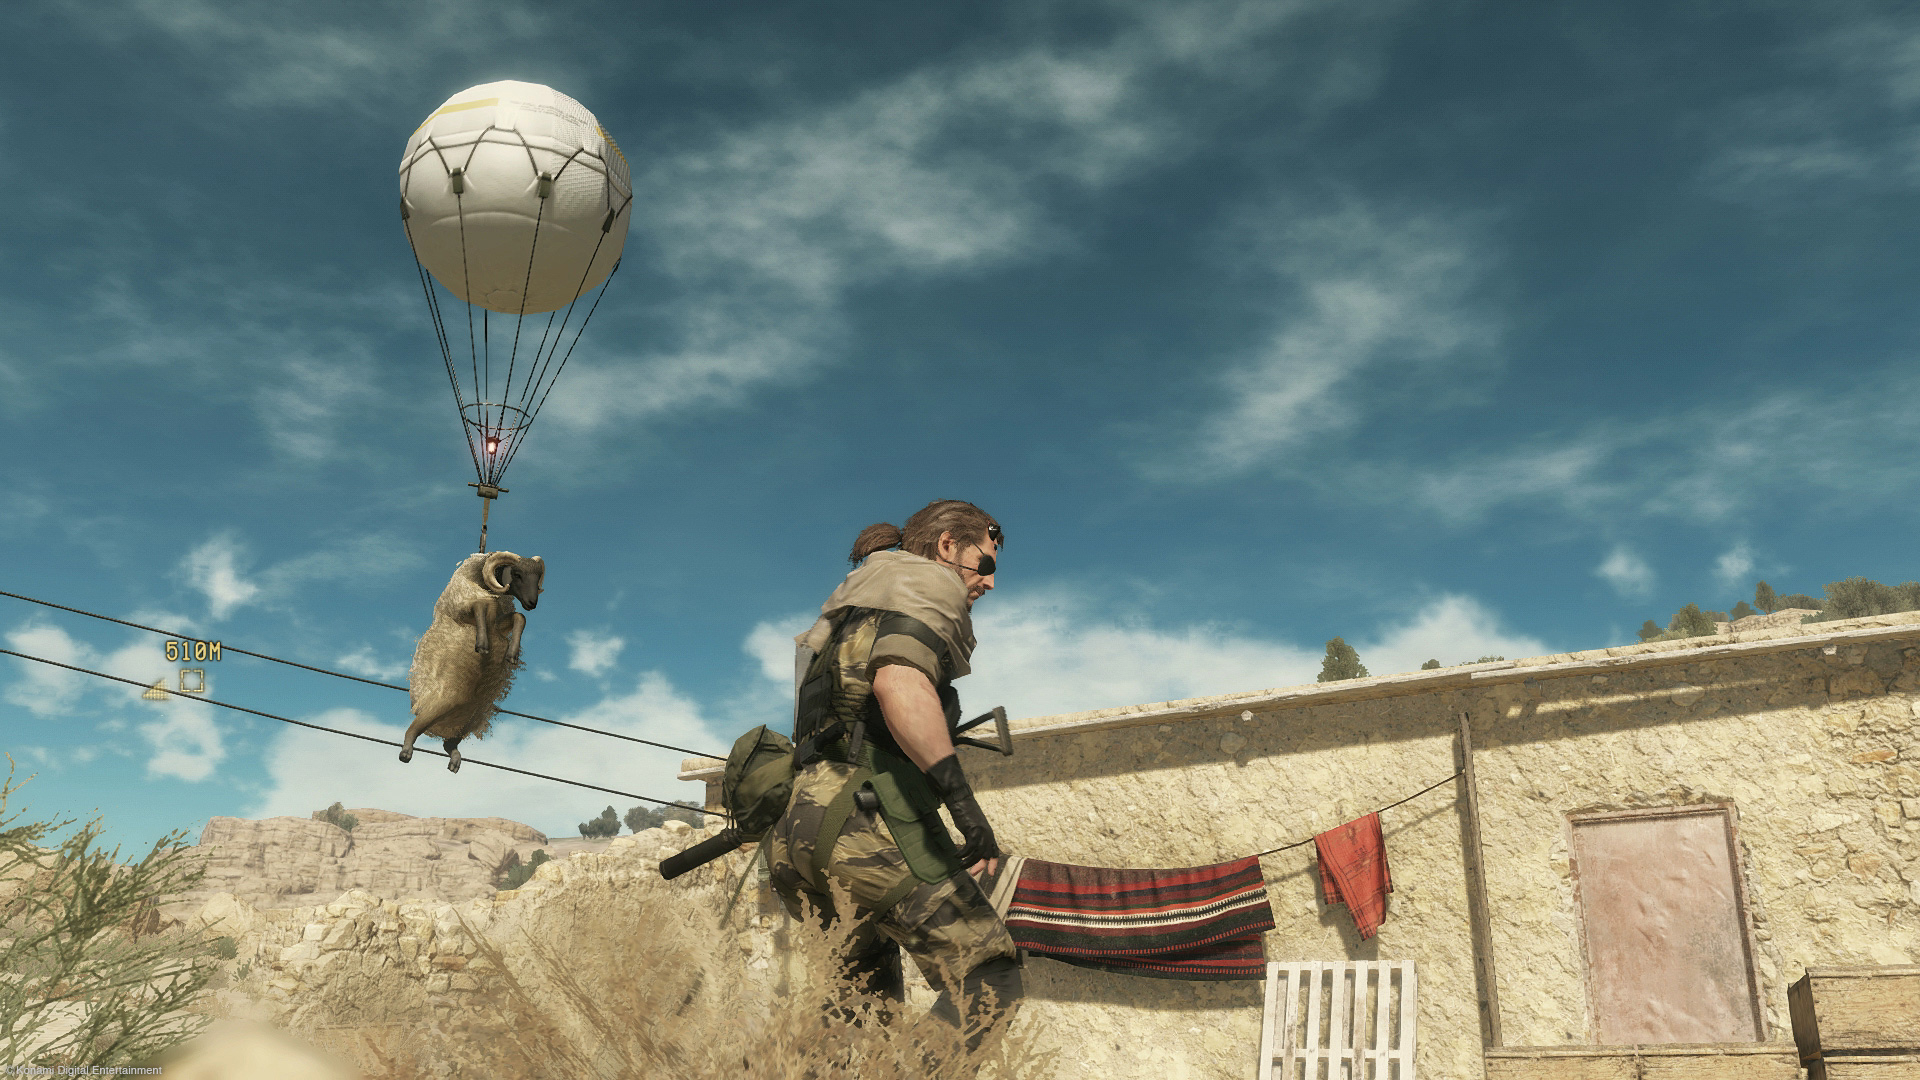 Imagine playing this game so straight-laced you never got to hear a sheep being flown away on a balloon. Tragic.